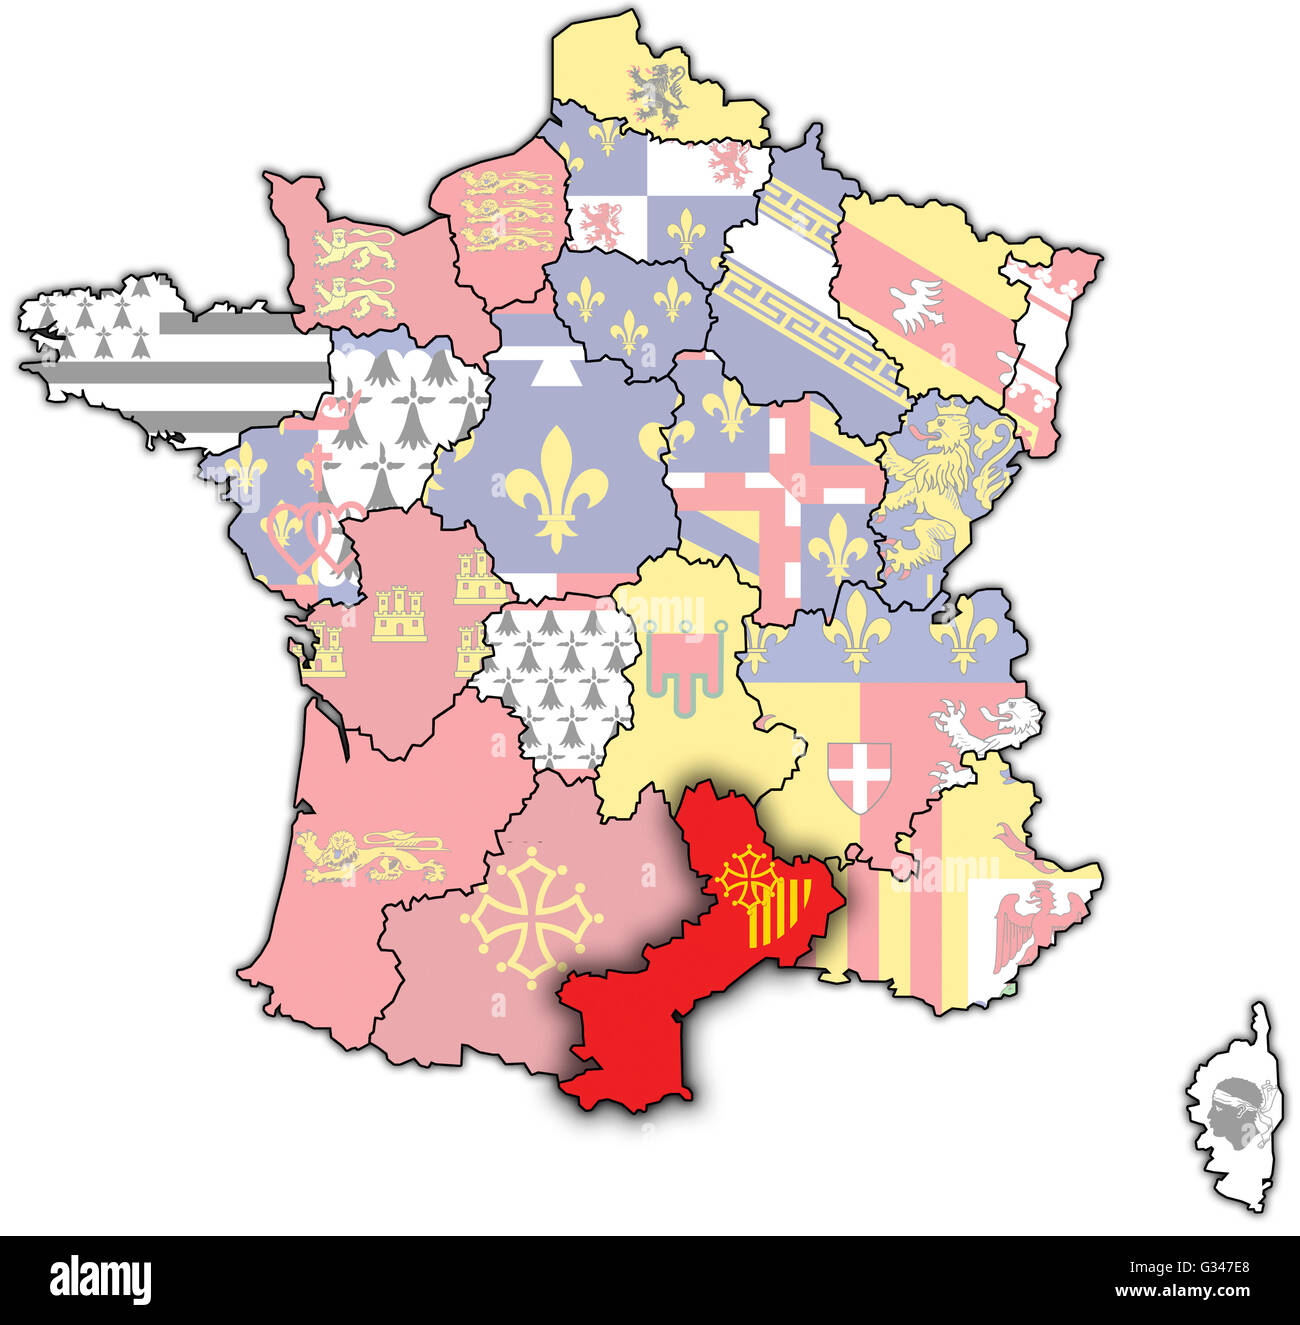 Roussillon France Map.Languedoc Roussillon On Old Map Of France With Flags Of Stock Photo